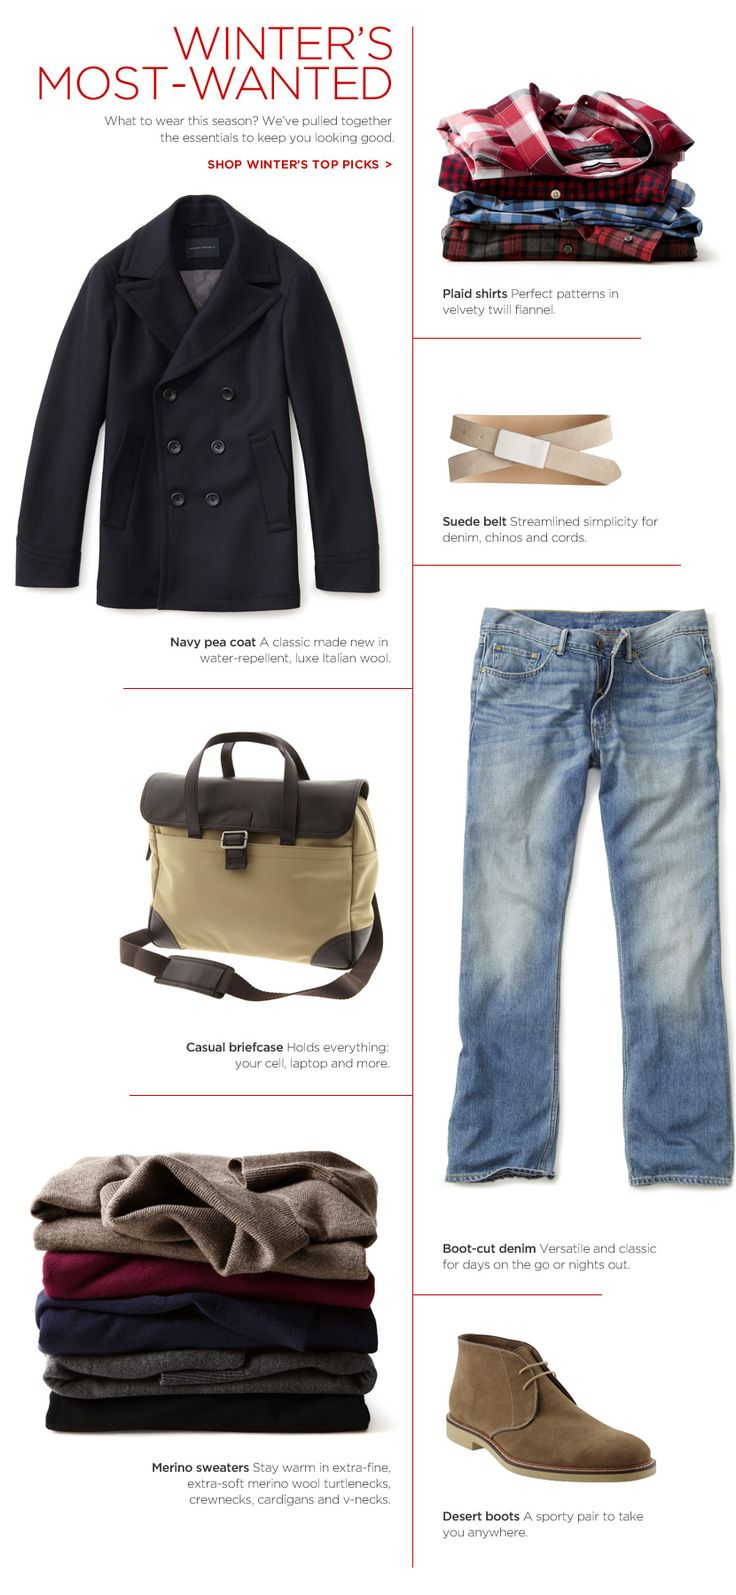 FREE Shipping on Orders Over $ Banana Republic Offers Modern, Refined Clothing for Men and Women, Plus Shoes and Accessories.